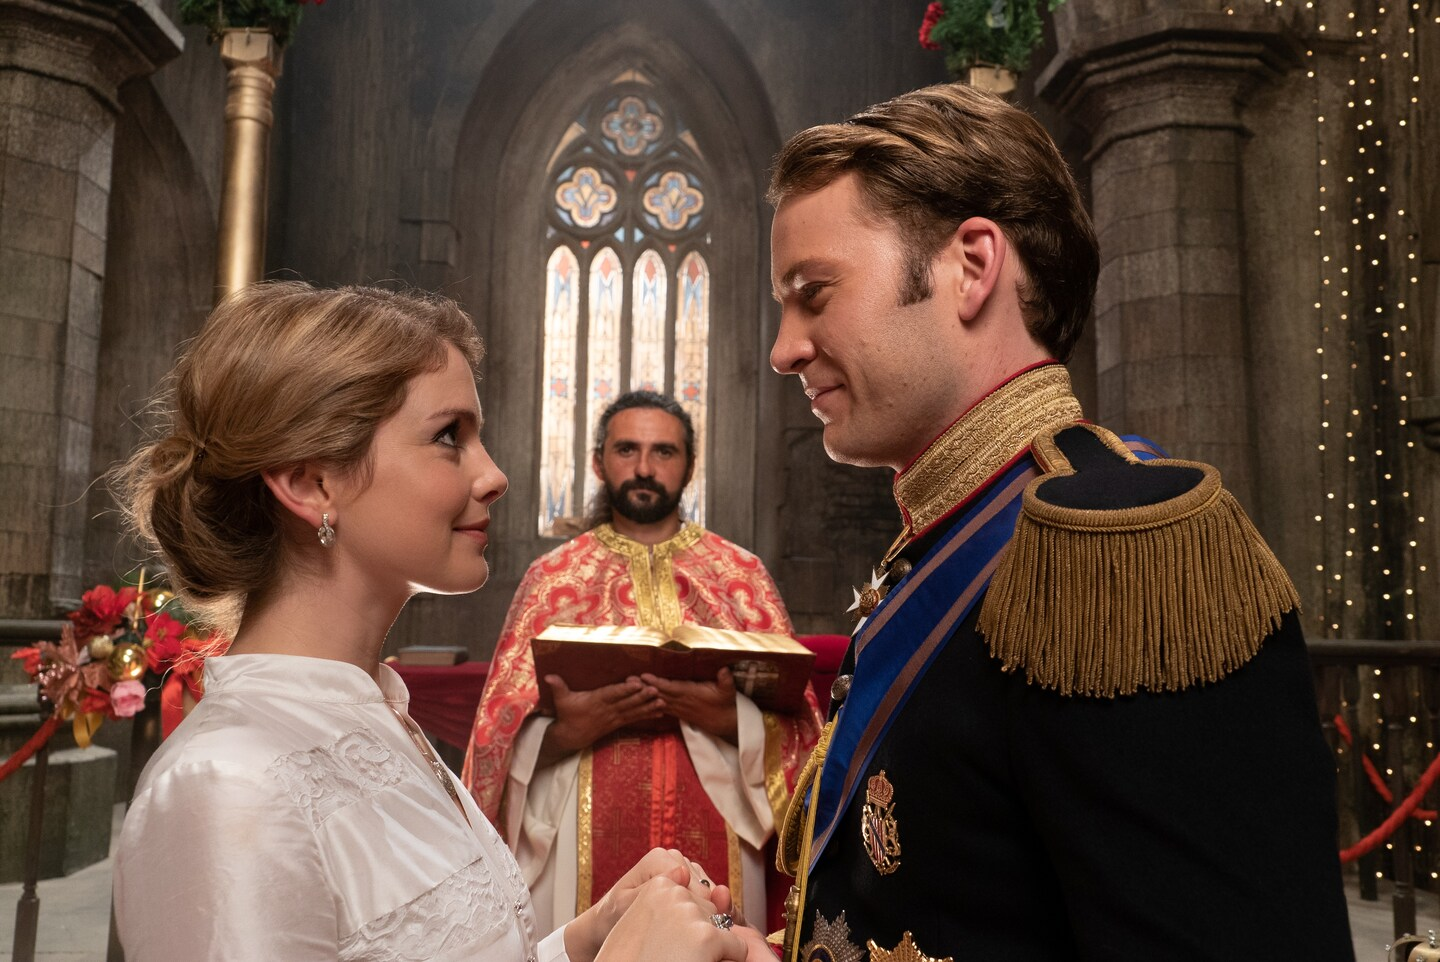 What to know about Netflix's 'A Christmas Prince: The Royal Wedding,' the sequel to last year's viral hit